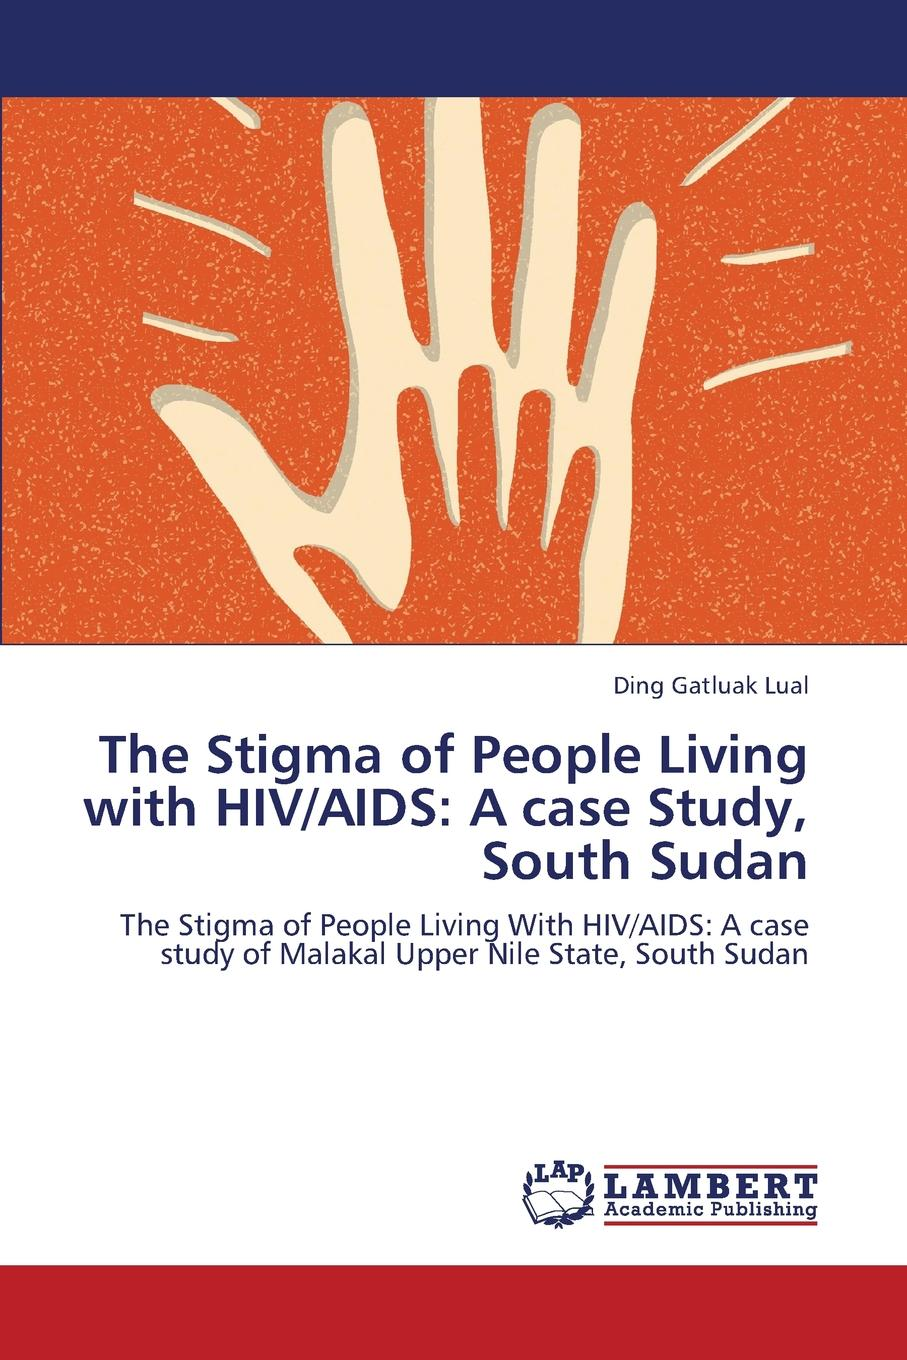 Lual Ding Gatluak The Stigma of People Living with HIV/AIDS. A Case Study, South Sudan combating hiv aids